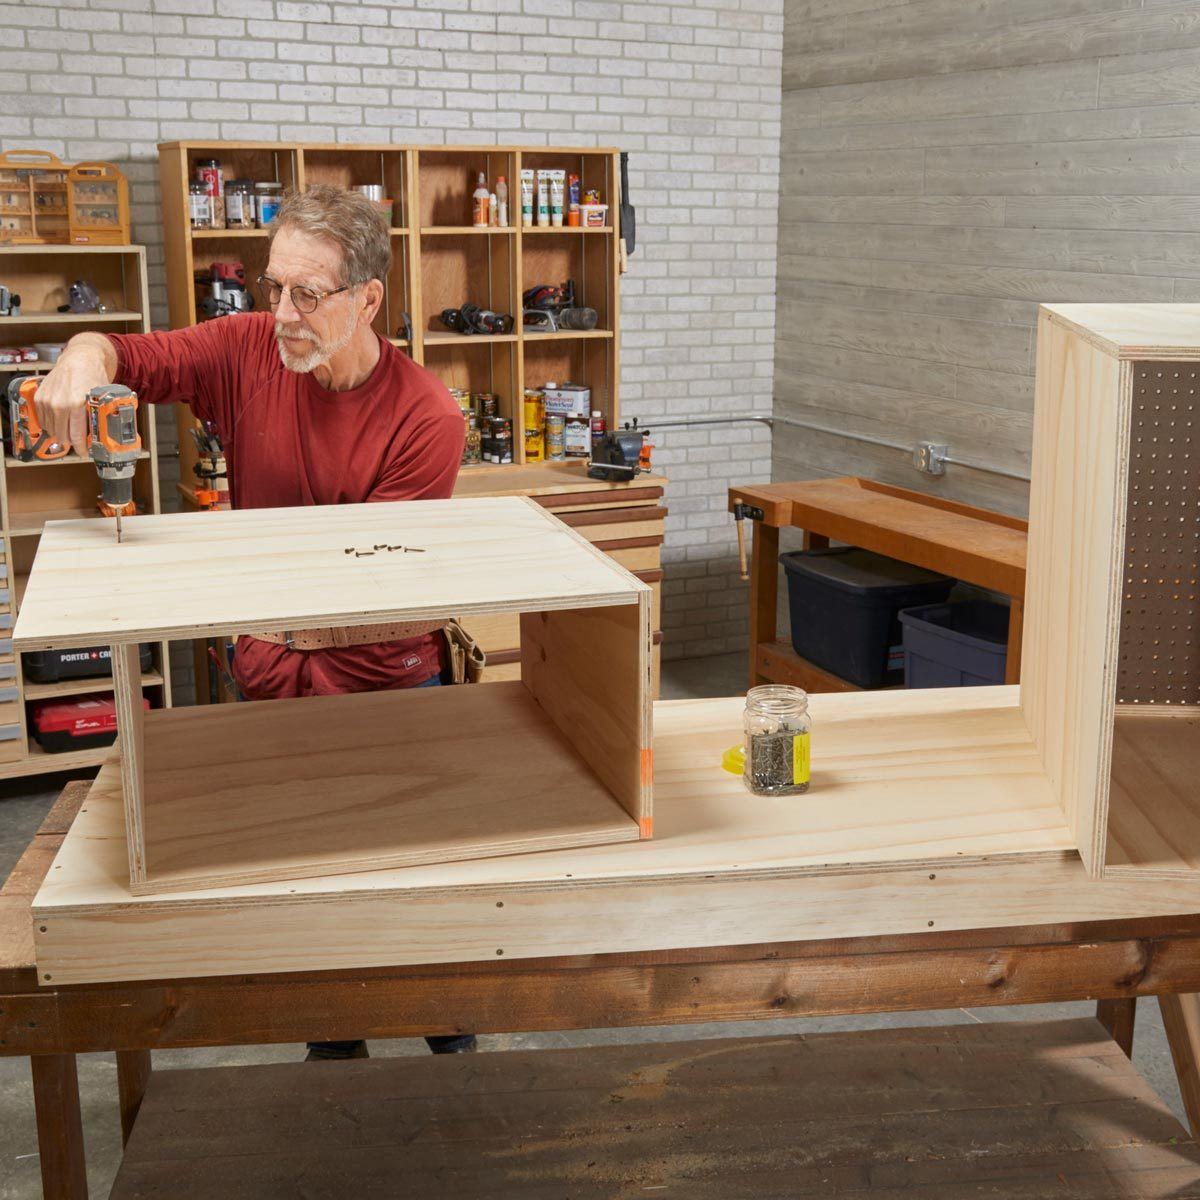 build the side cabinets flip-top workbench